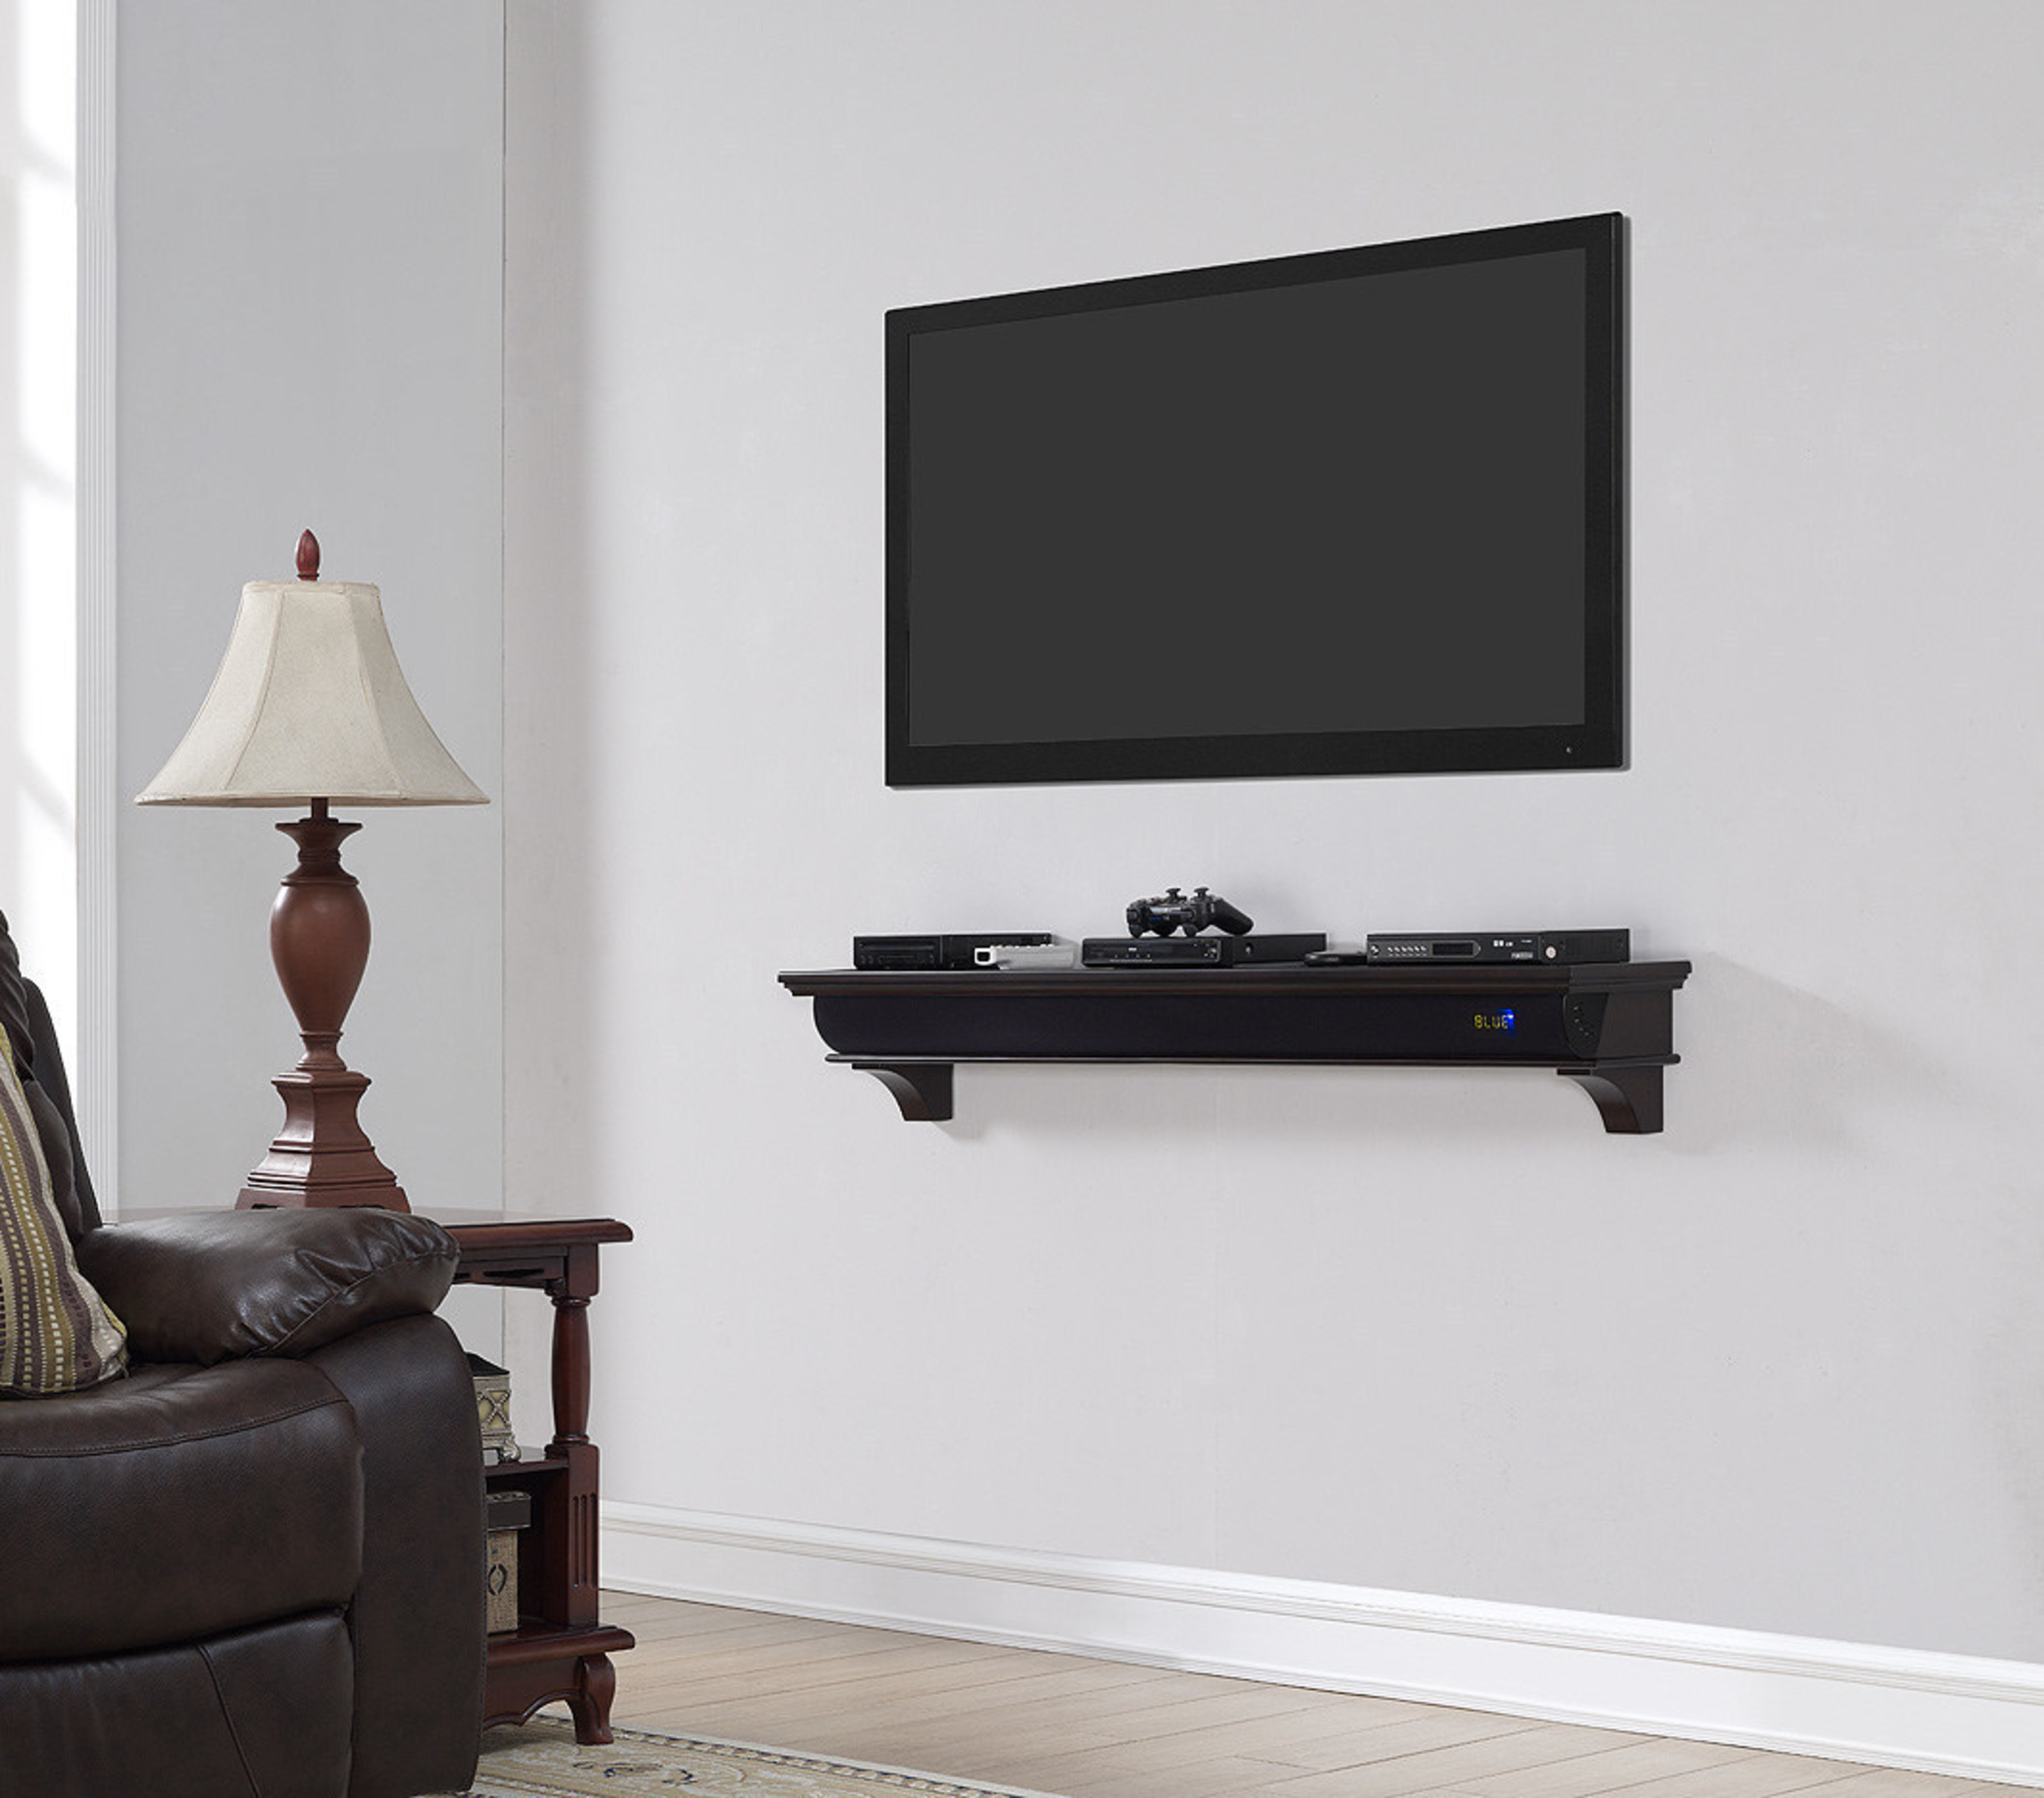 Twin-Star Home Hits the Top Shelf of Home Entertainment